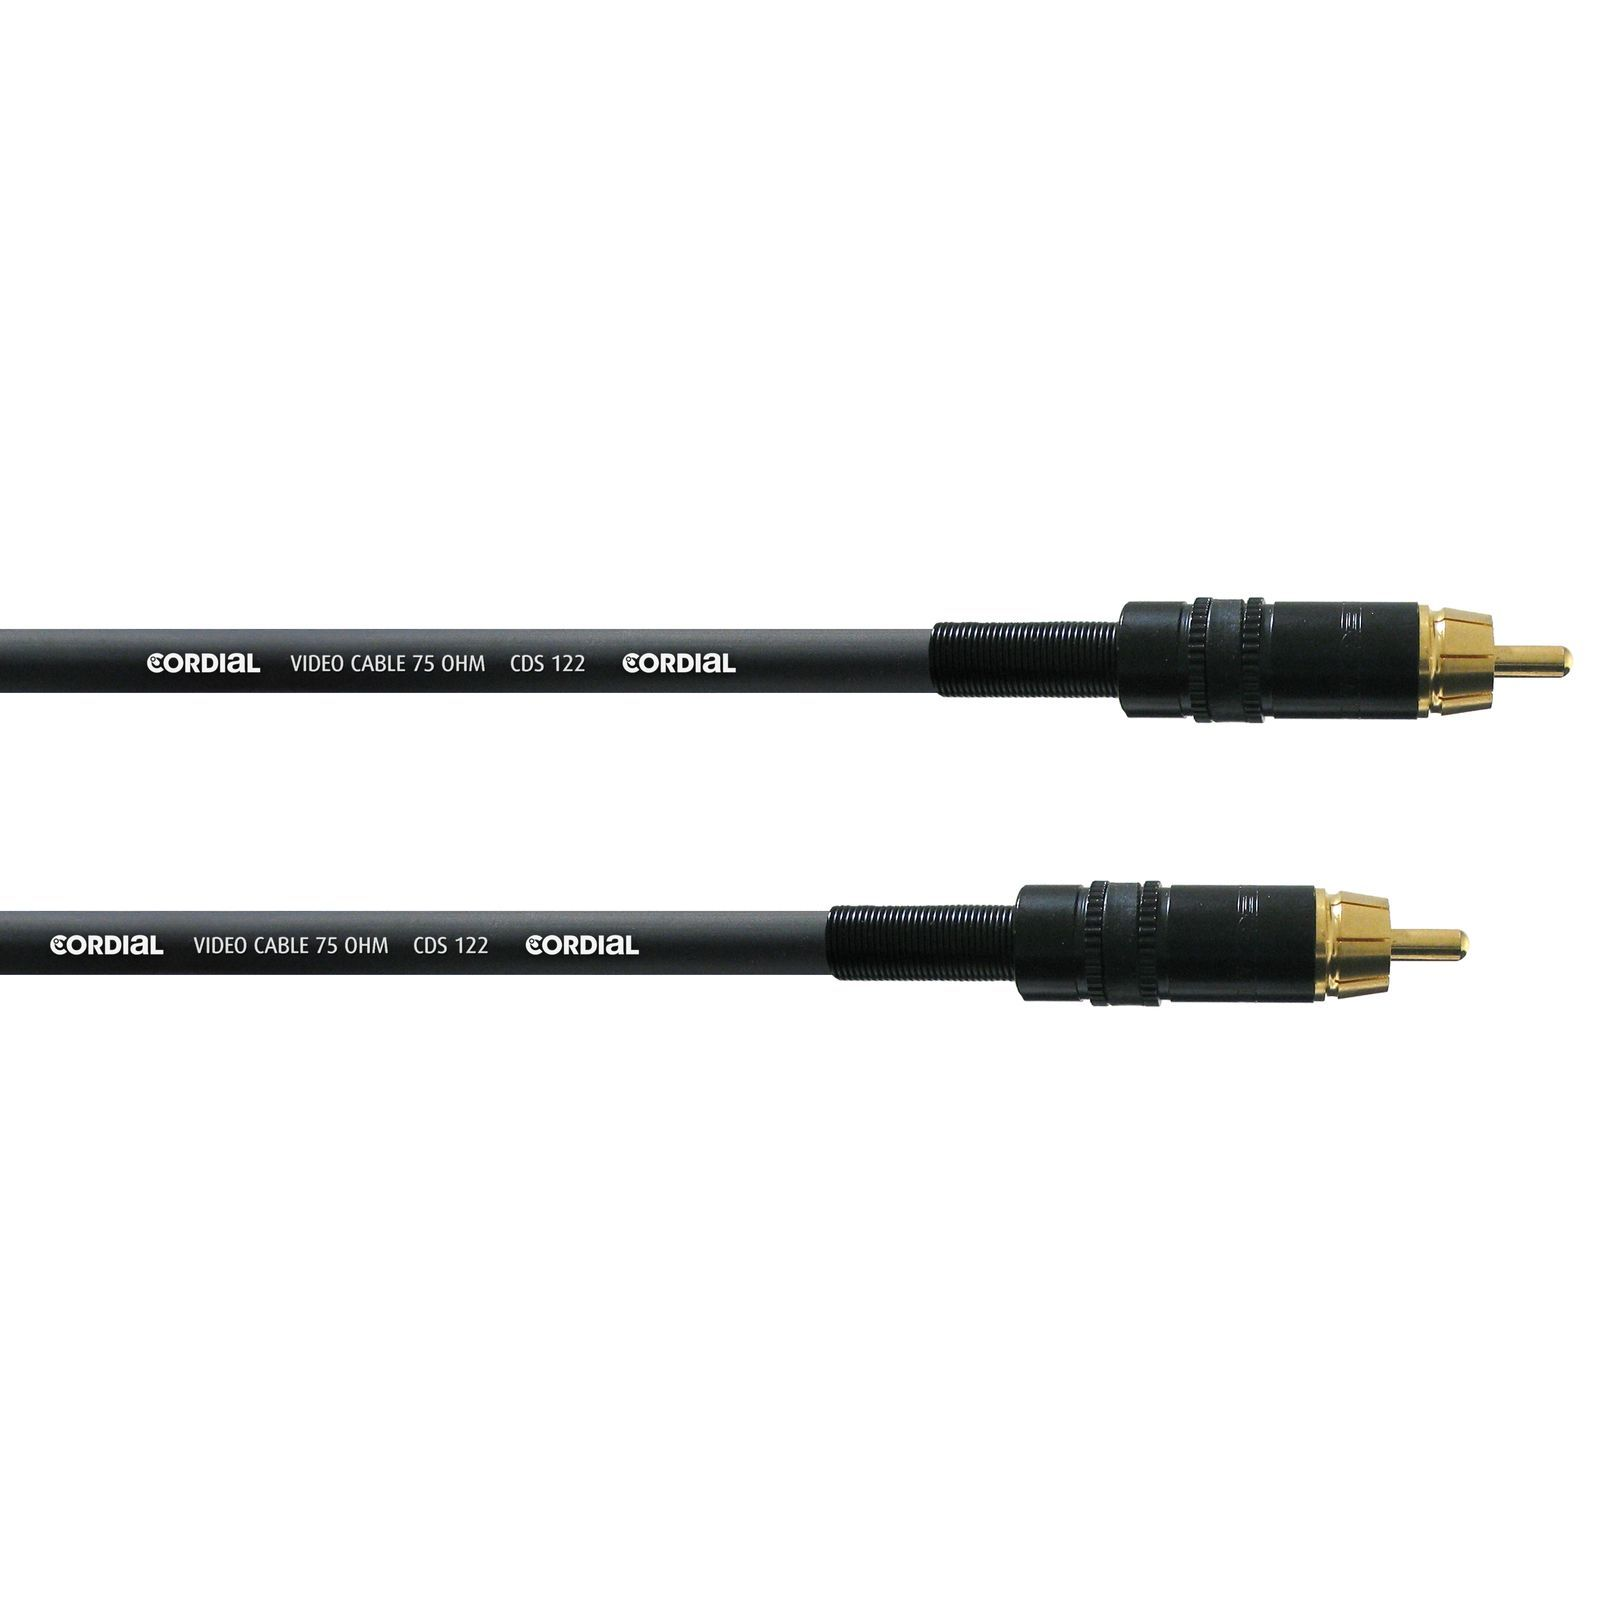 Cordial CPDS 10 CC S/PDIF Interface Cable 10m Rean Product Image